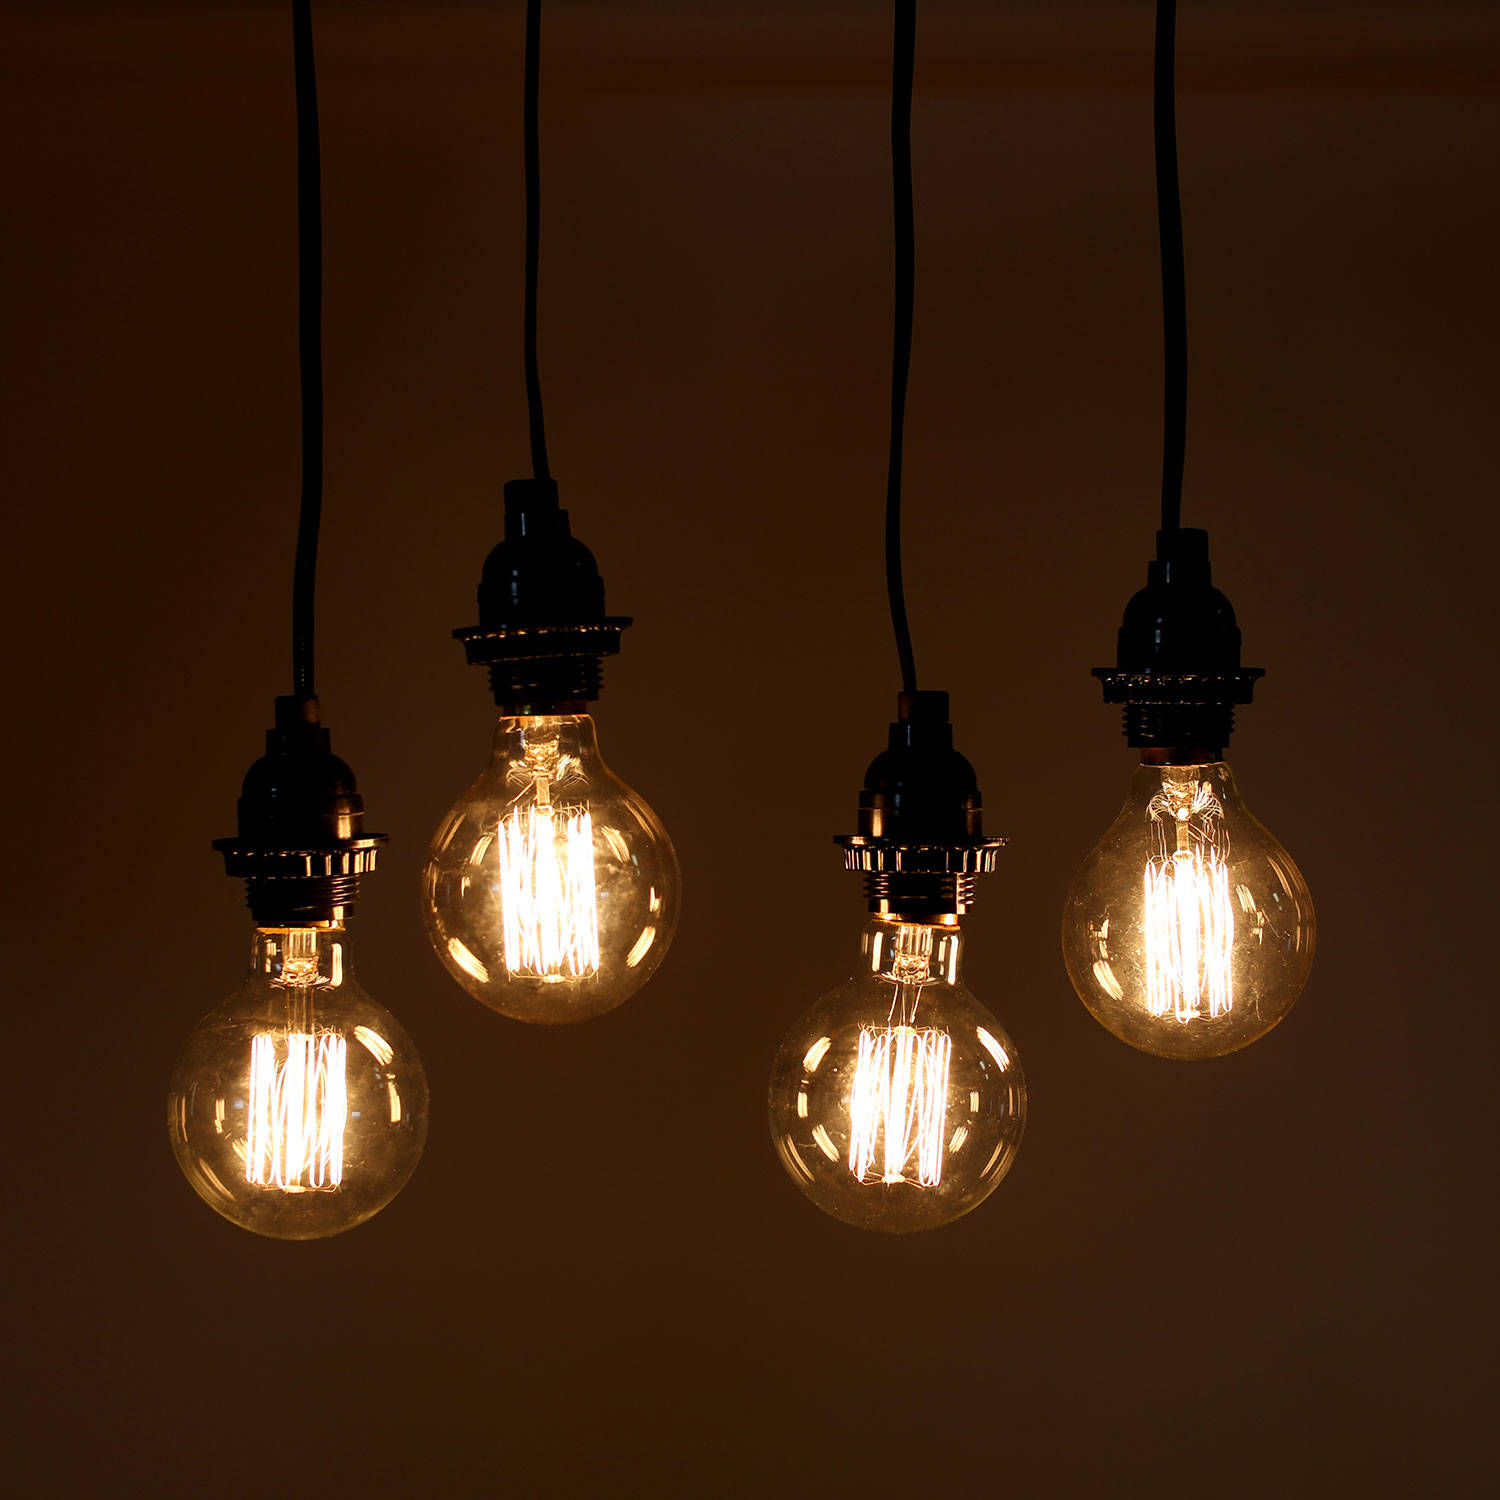 Lights com   Bulbs and Accessories   Vintage Bulbs   Incandescent   Midwood G25 Vintage Edison     -> Lampade A Led Grandi Dimensioni